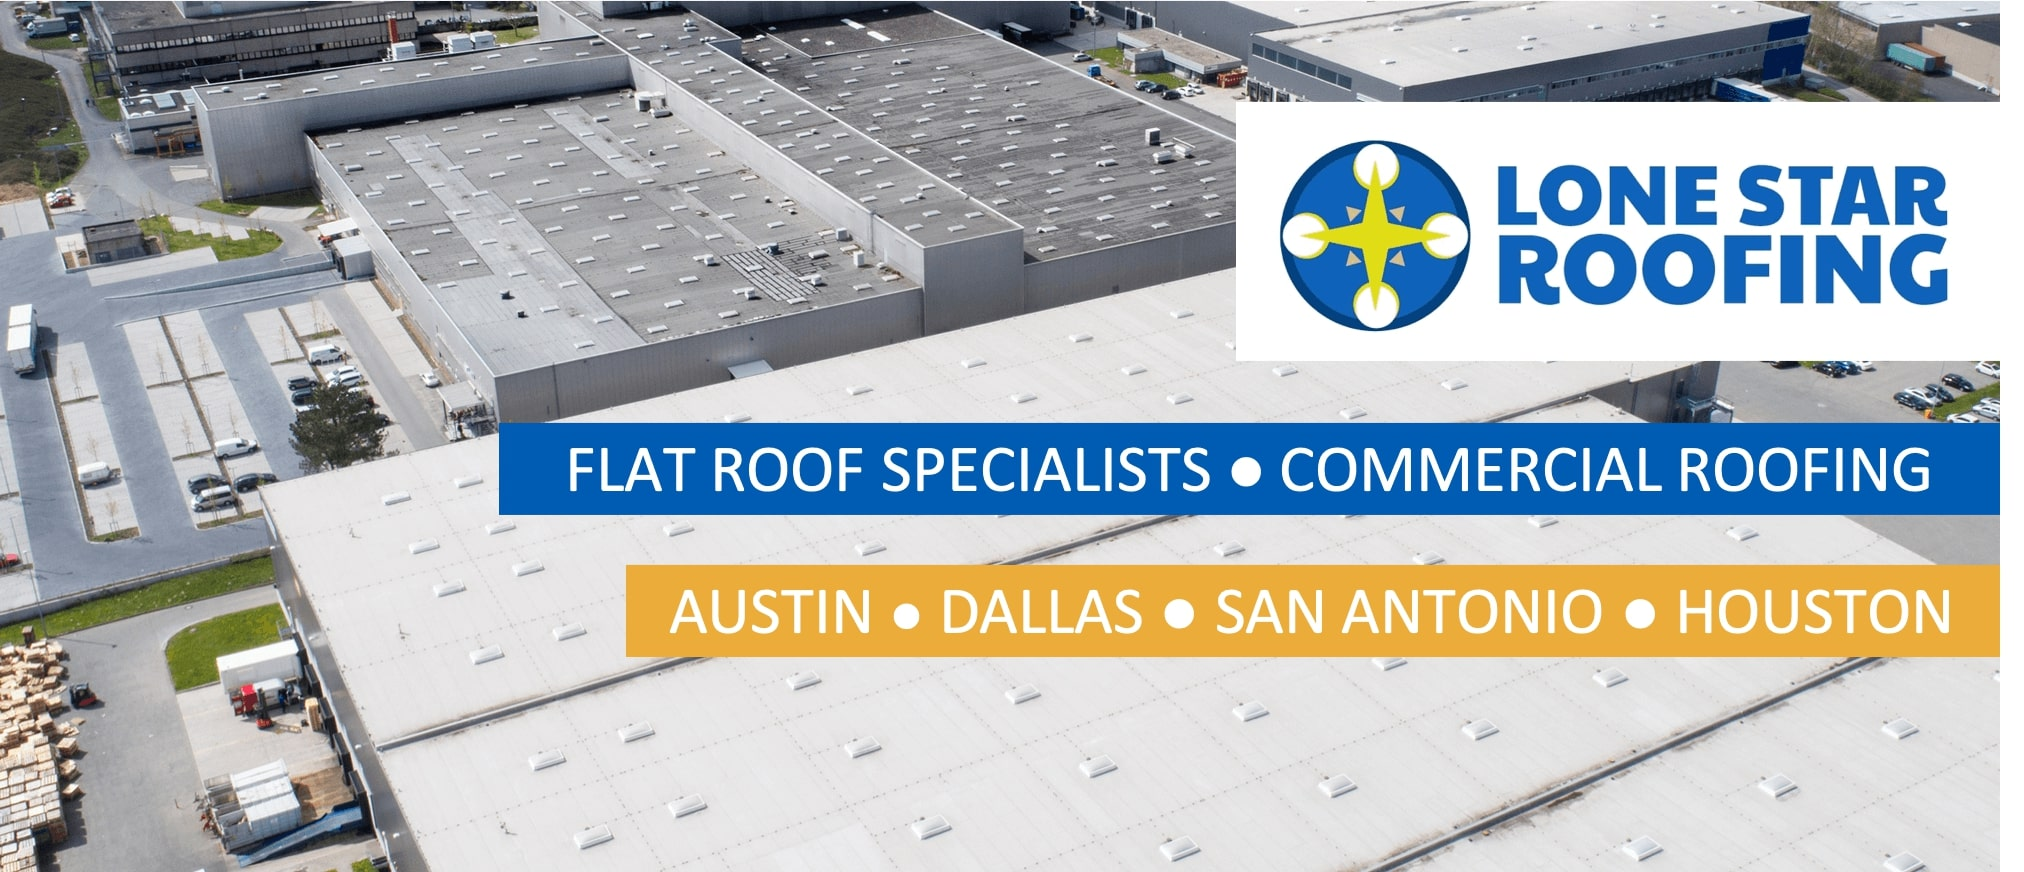 Lone Star Roofing Dallas Texas Cover